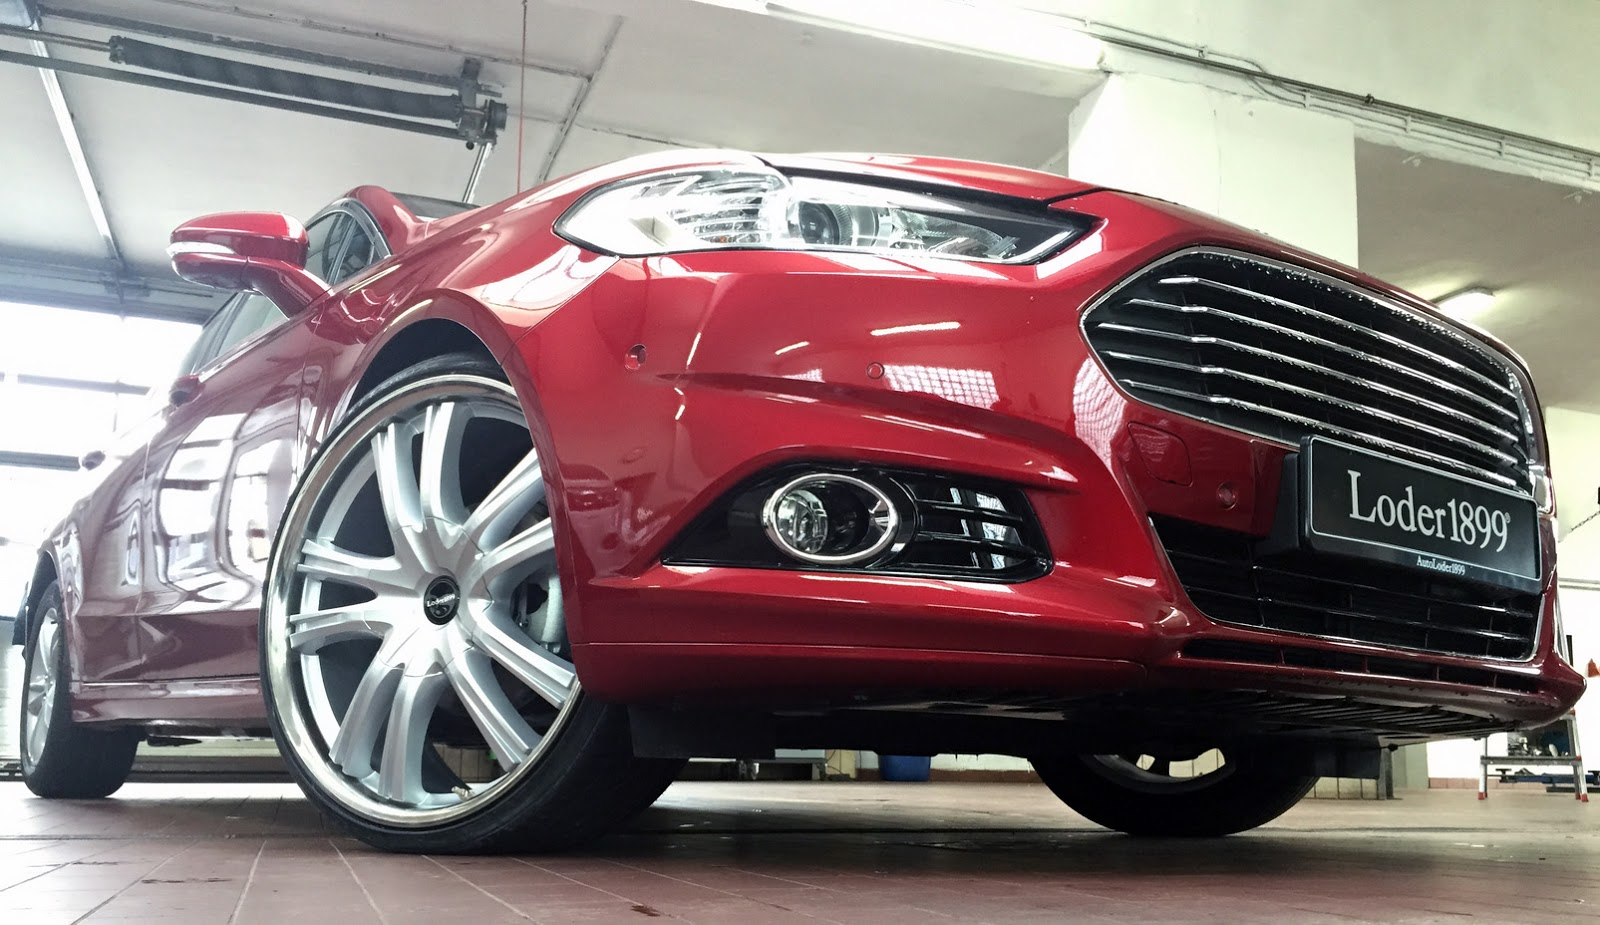 Ford Escape Ecoboost >> Too Much? Loder1899 Gives New Ford Mondeo 22-Inch Wheels | Carscoops